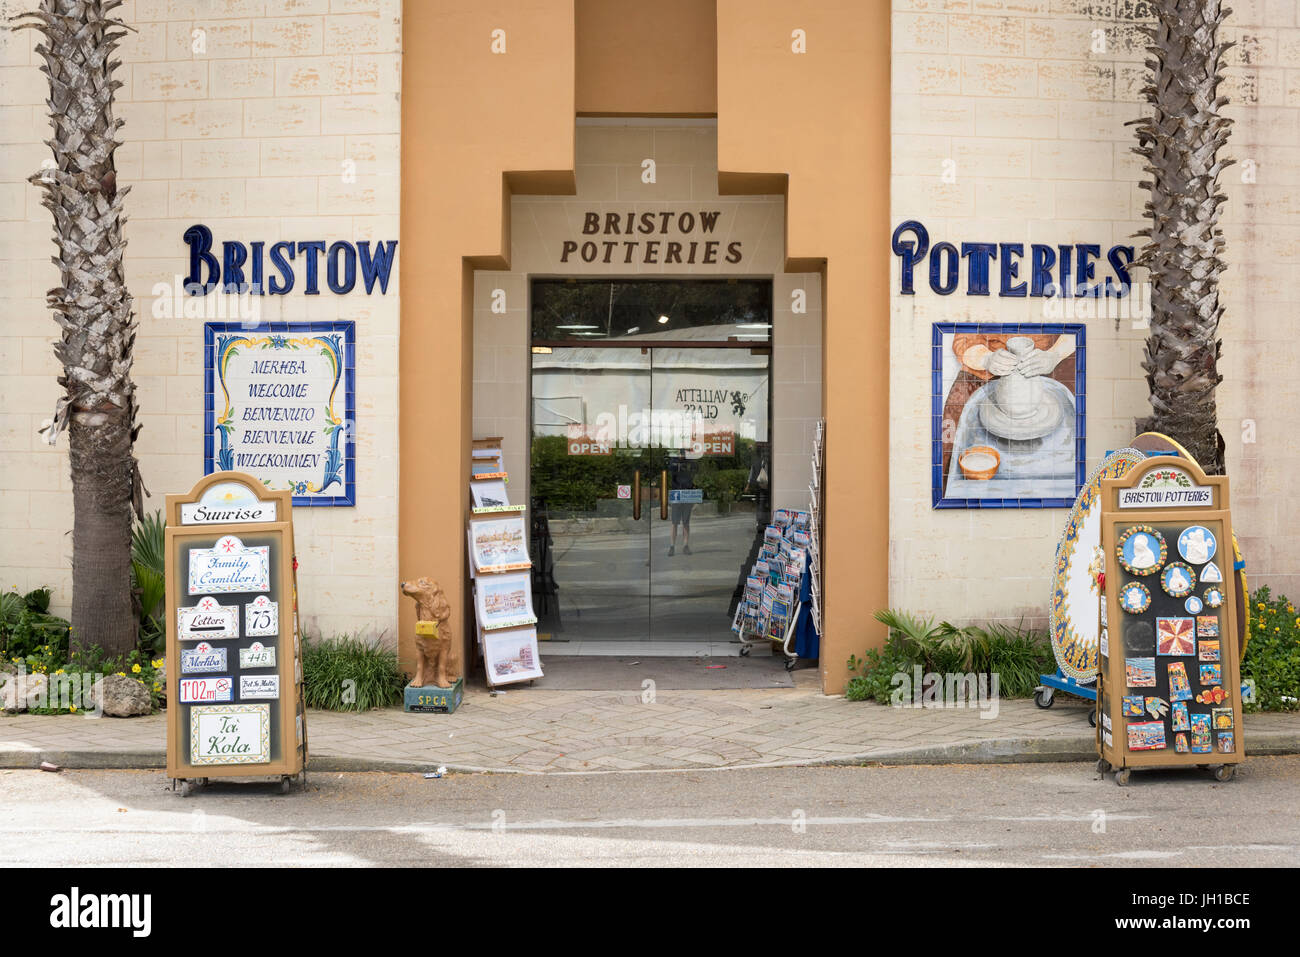 The Bristow Potteries factory and shop at Ta' Qali Crafts Centre and artisan village Malta - Stock Image